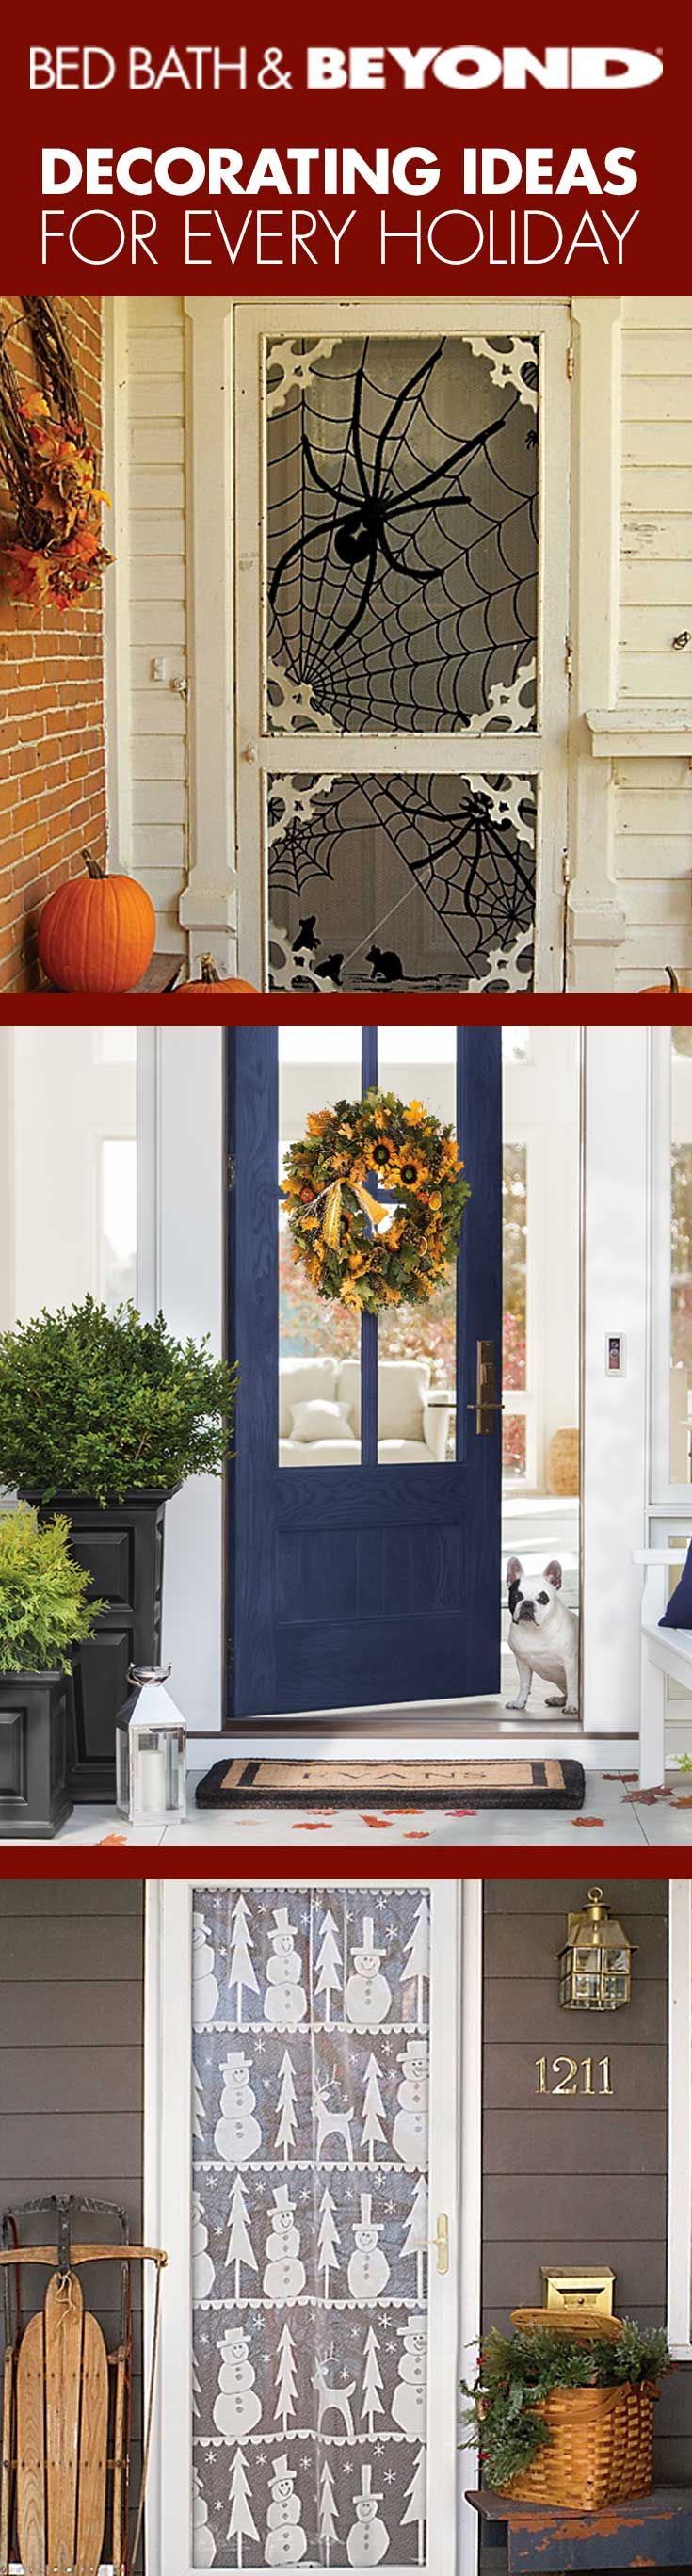 From Halloween to New Year's Day, we've got everything to make your home a holiday one.